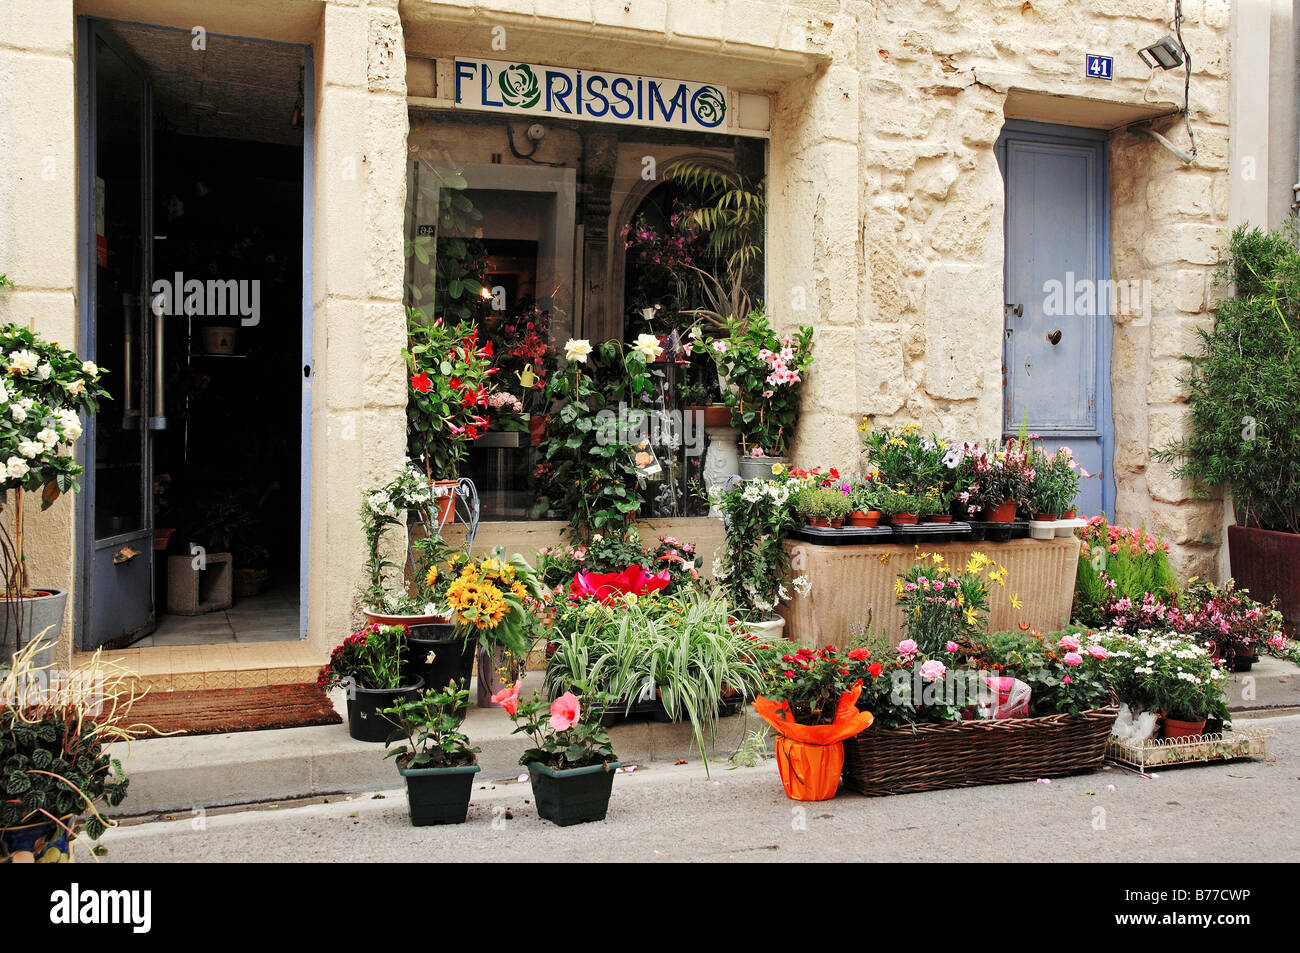 Flower shop, Aigues-Mortes, Camargue, Gard, Languedoc-Roussillon, Southern France, France, Europe - Stock Image